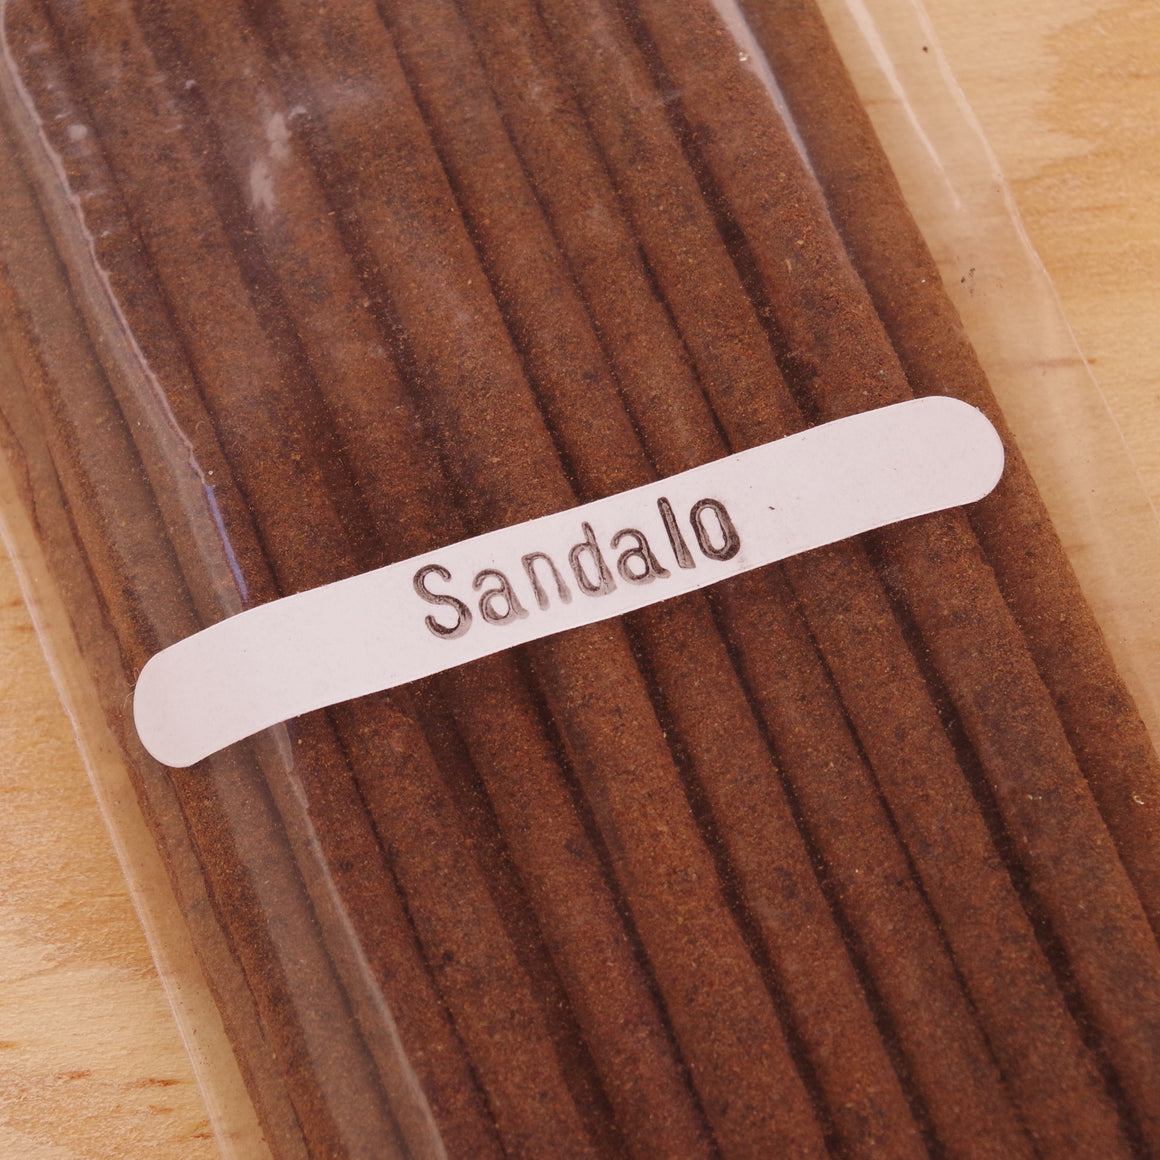 40 sticks Sandalwood Incense Handrolled in Mexico Long Duration 1.5 hours